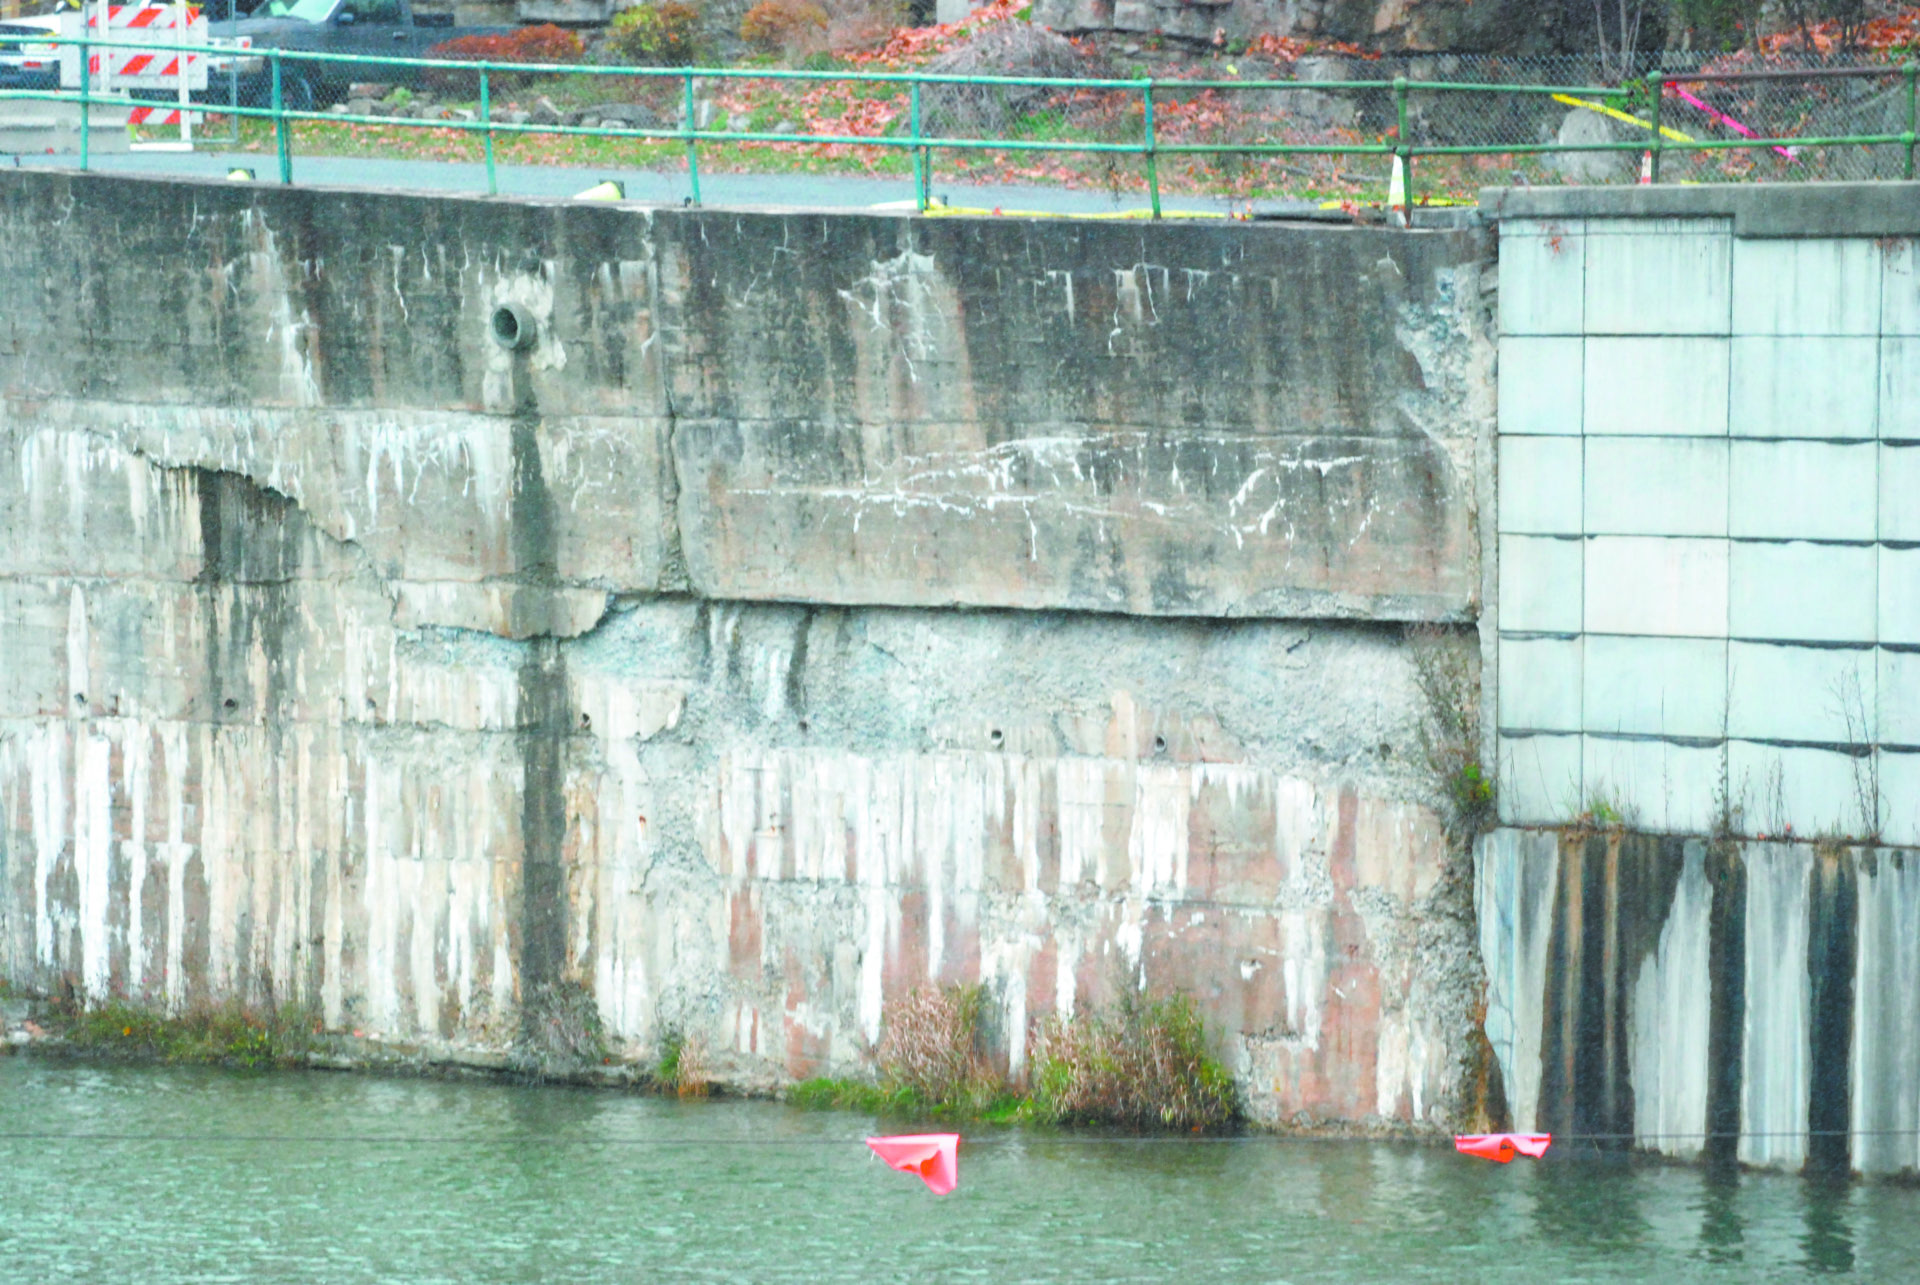 Village may go to court over canal wall ownership